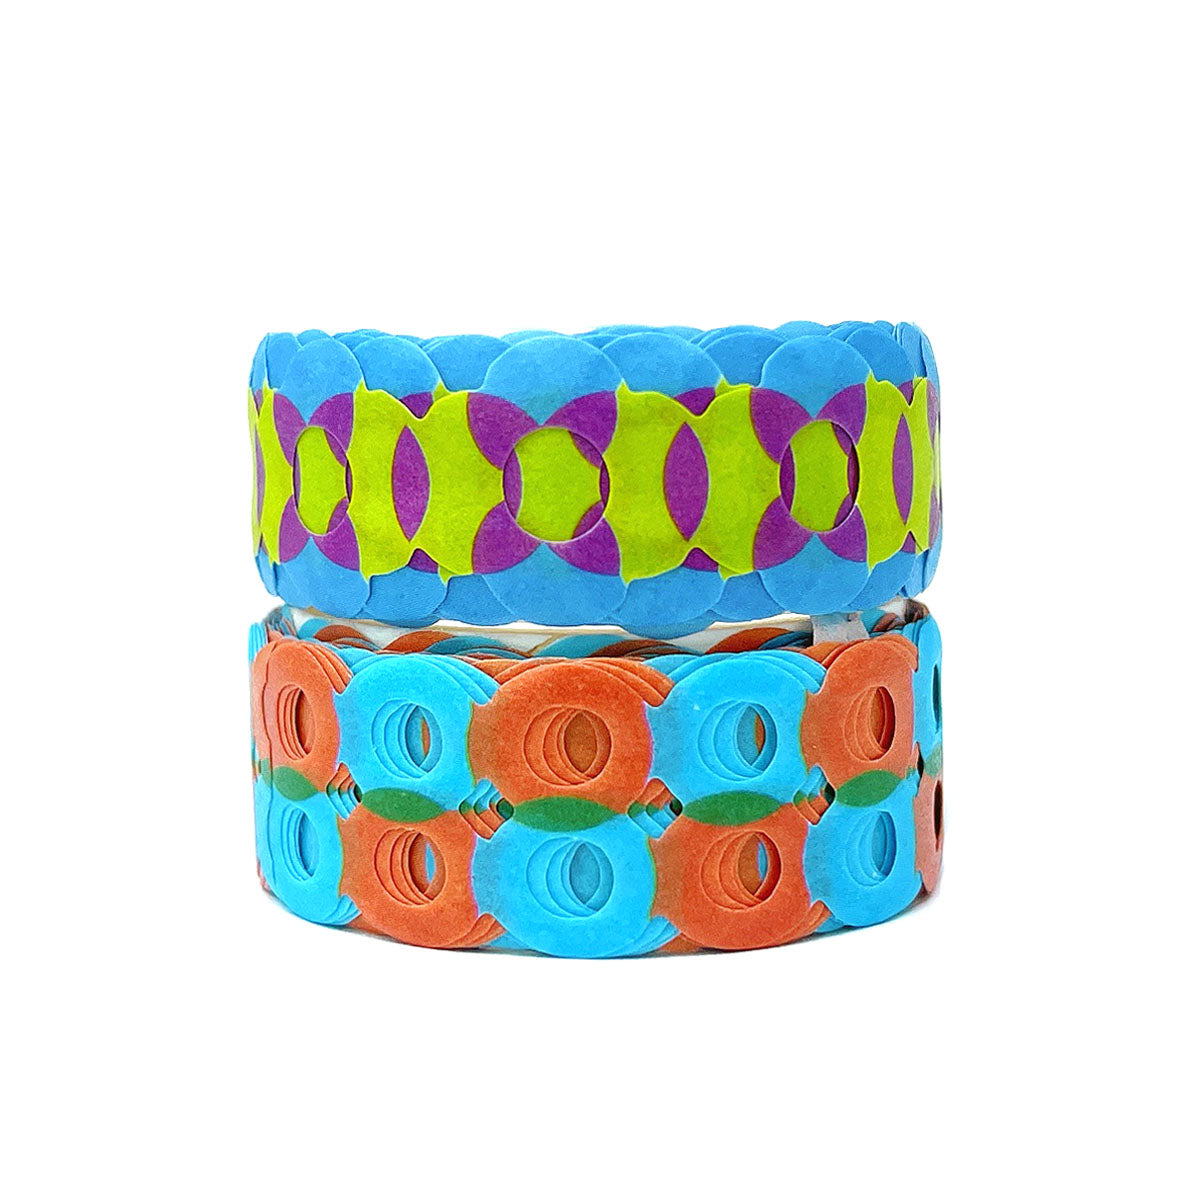 Wrapables Bright Geometric Design Hollow Washi Masking Tape 4M Length Total (Set of 2)